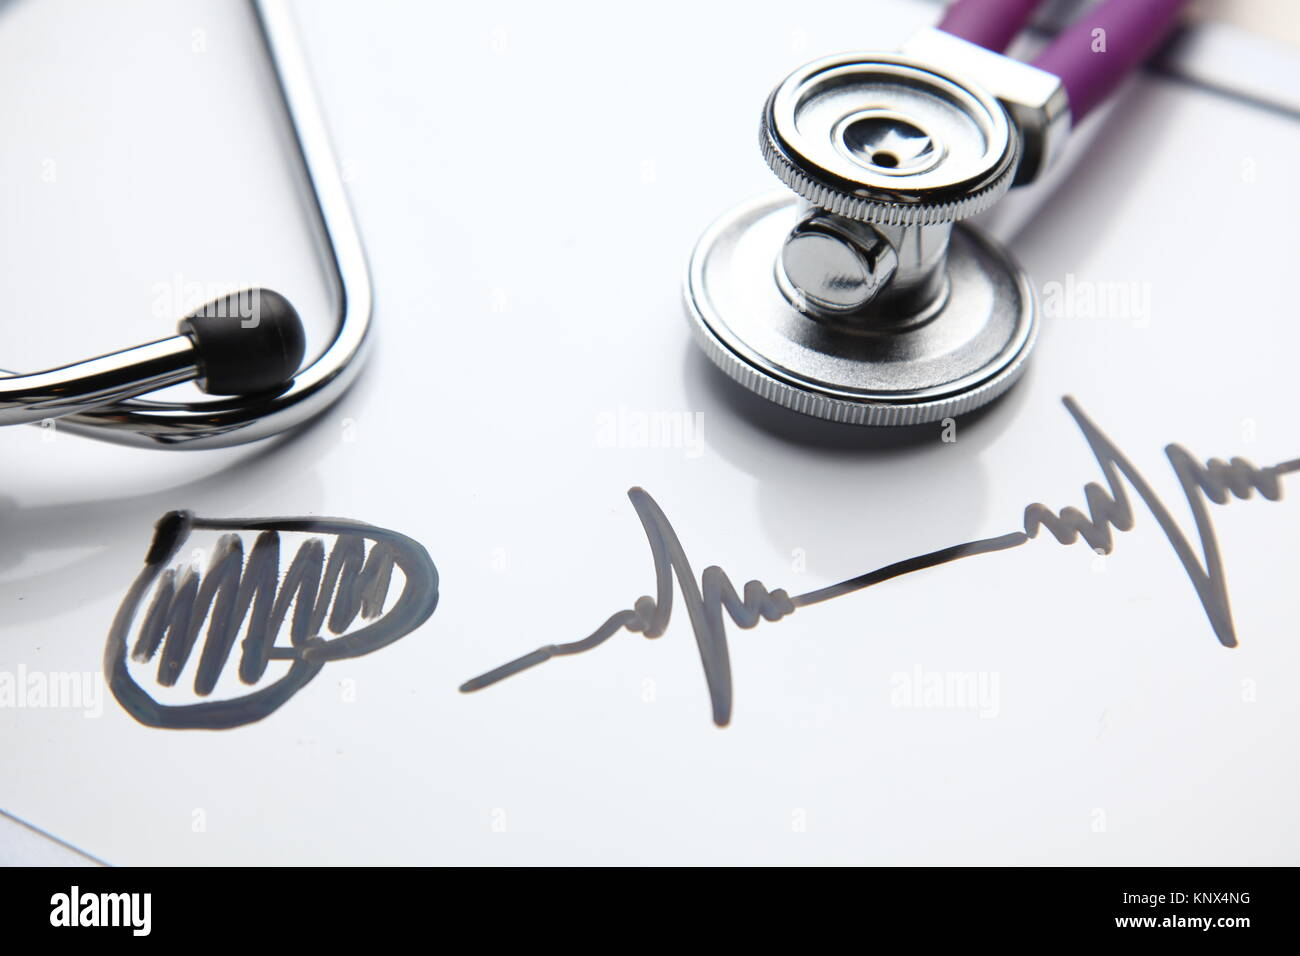 Medical stethoscope with cardiogram lying on desk in hospital - Stock Image